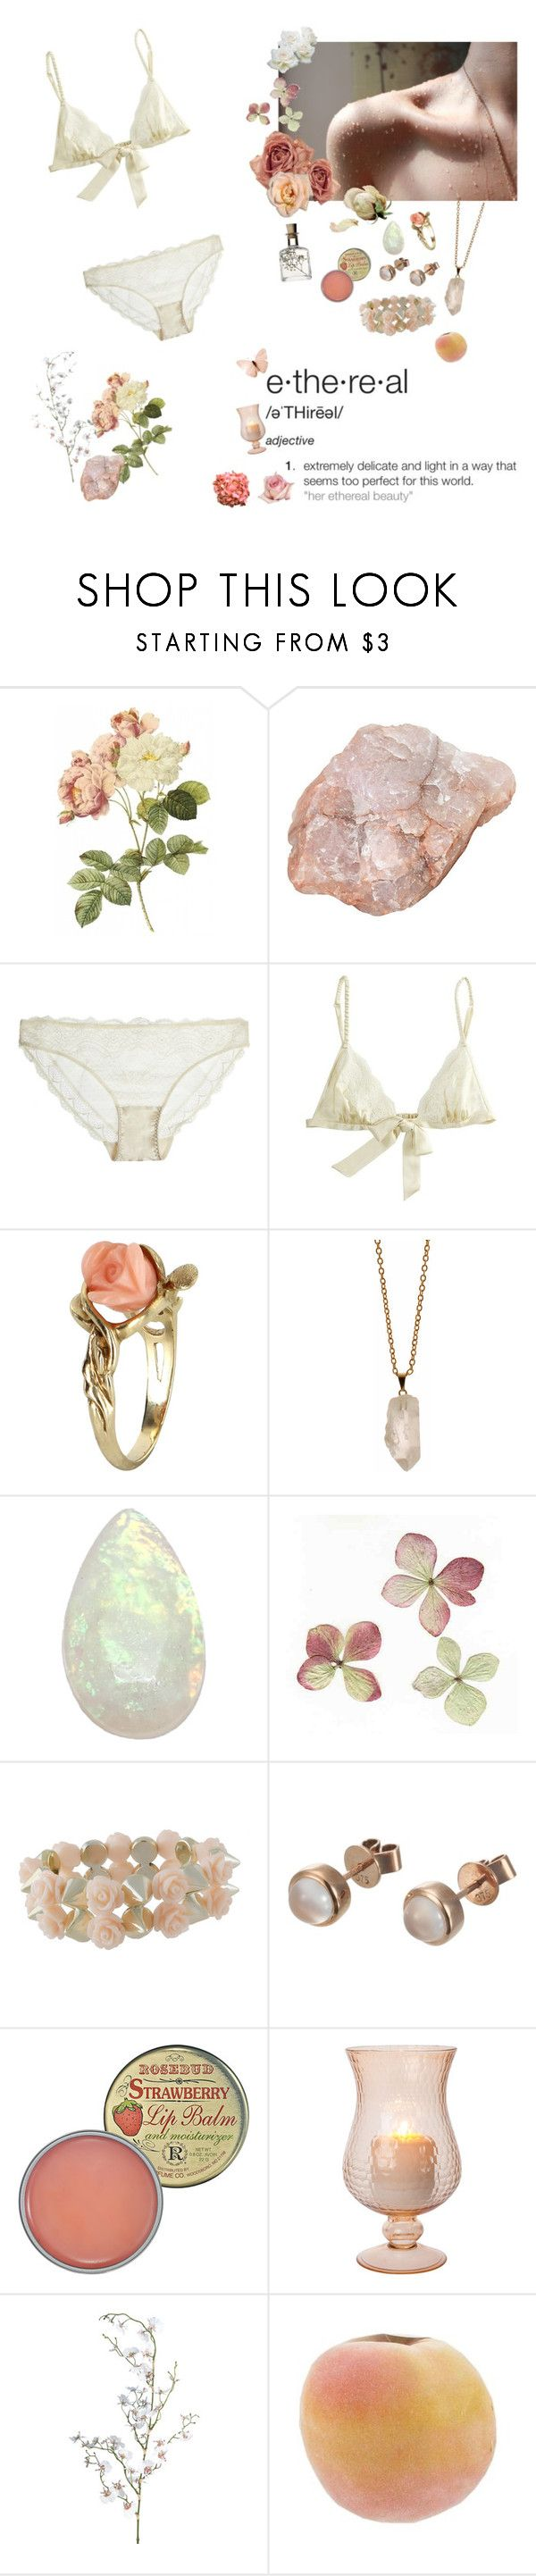 """""""ethereal"""" by angeladesantis ❤ liked on Polyvore featuring KEEP ME, STELLA McCARTNEY, OuiHours, Vintage, Rock 'N Rose, Chanel, Miso, London Road, Rosebud Perfume Co. and Pavilion Broadway"""